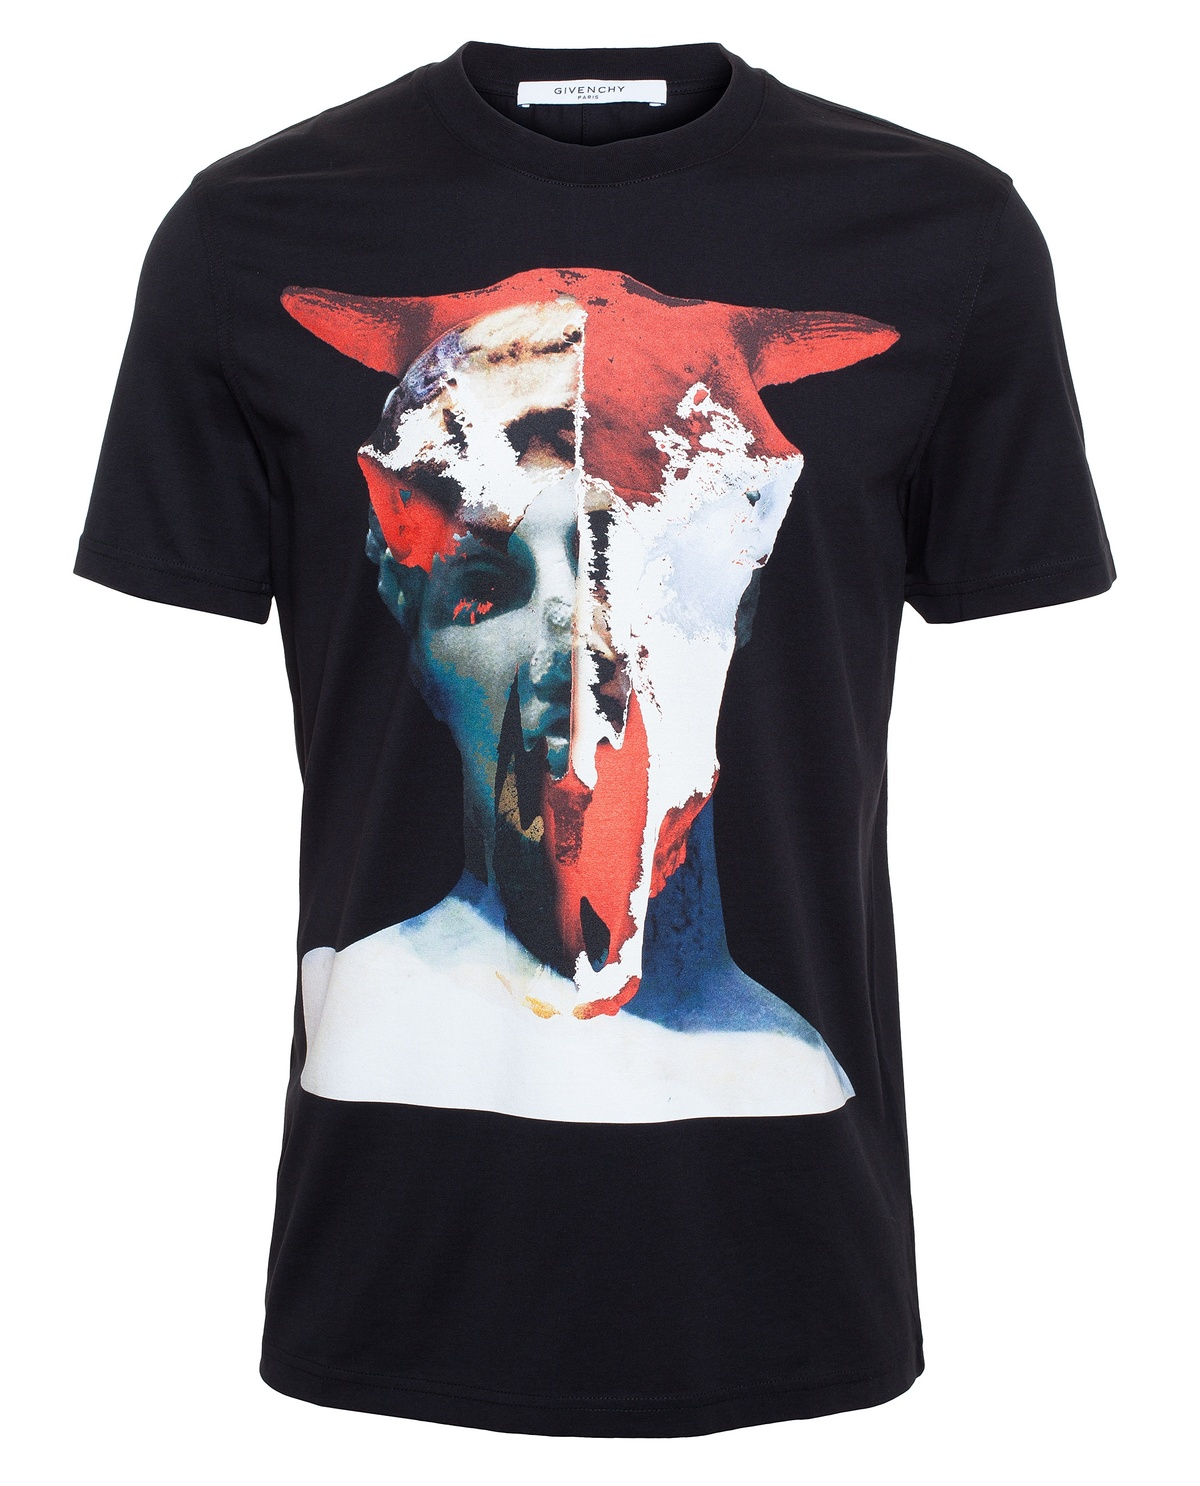 Givenchy cow print size s short sleeve t shirts for sale for Givenchy t shirts for sale